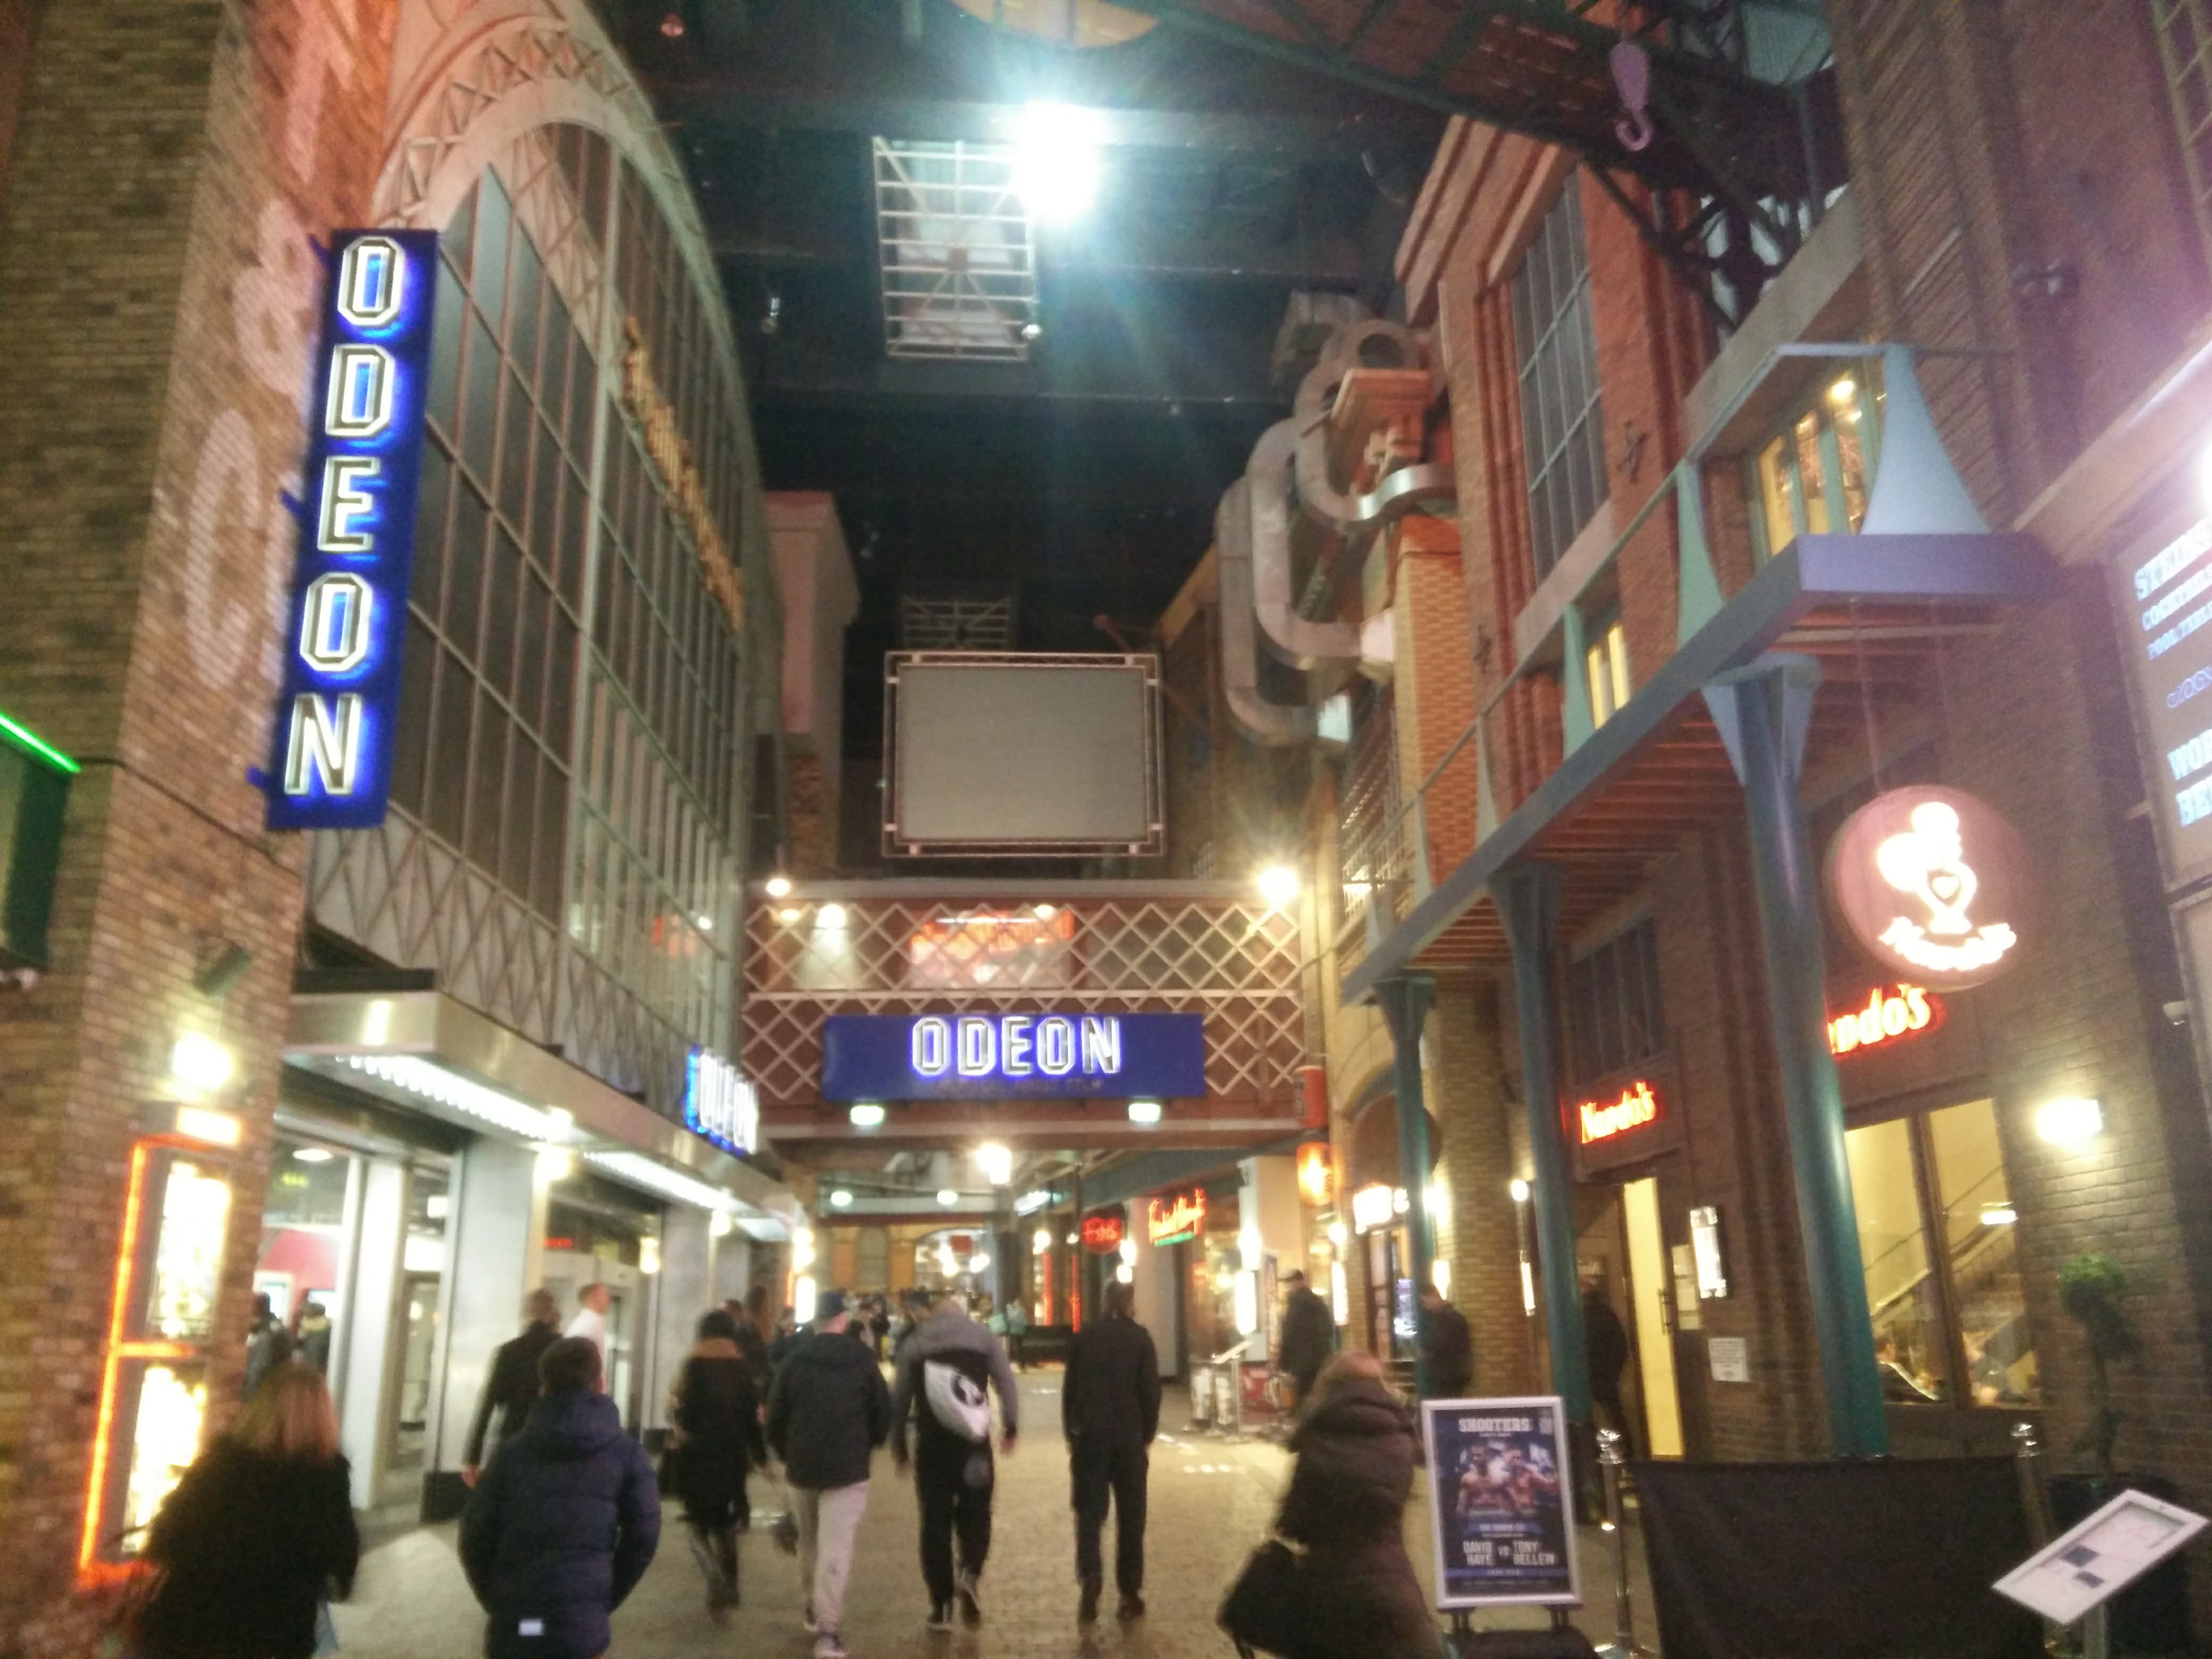 Date Night at The Printworks